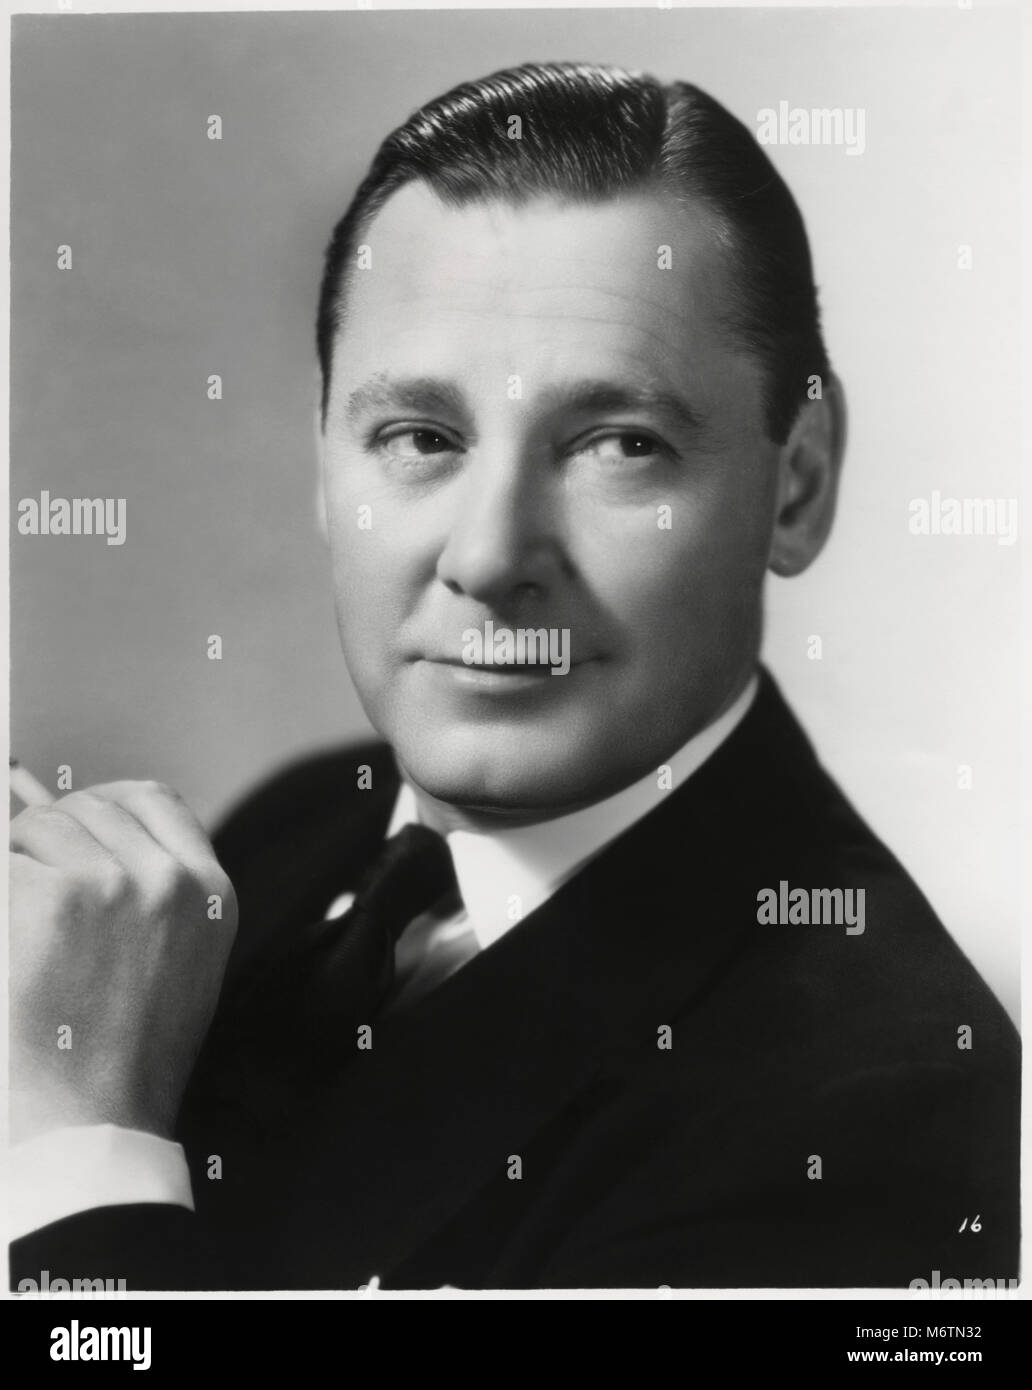 Herbert Marshall, Publicity Portrait for the Film, 'Mad About Music', Universal Pictures, 1938 - Stock Image